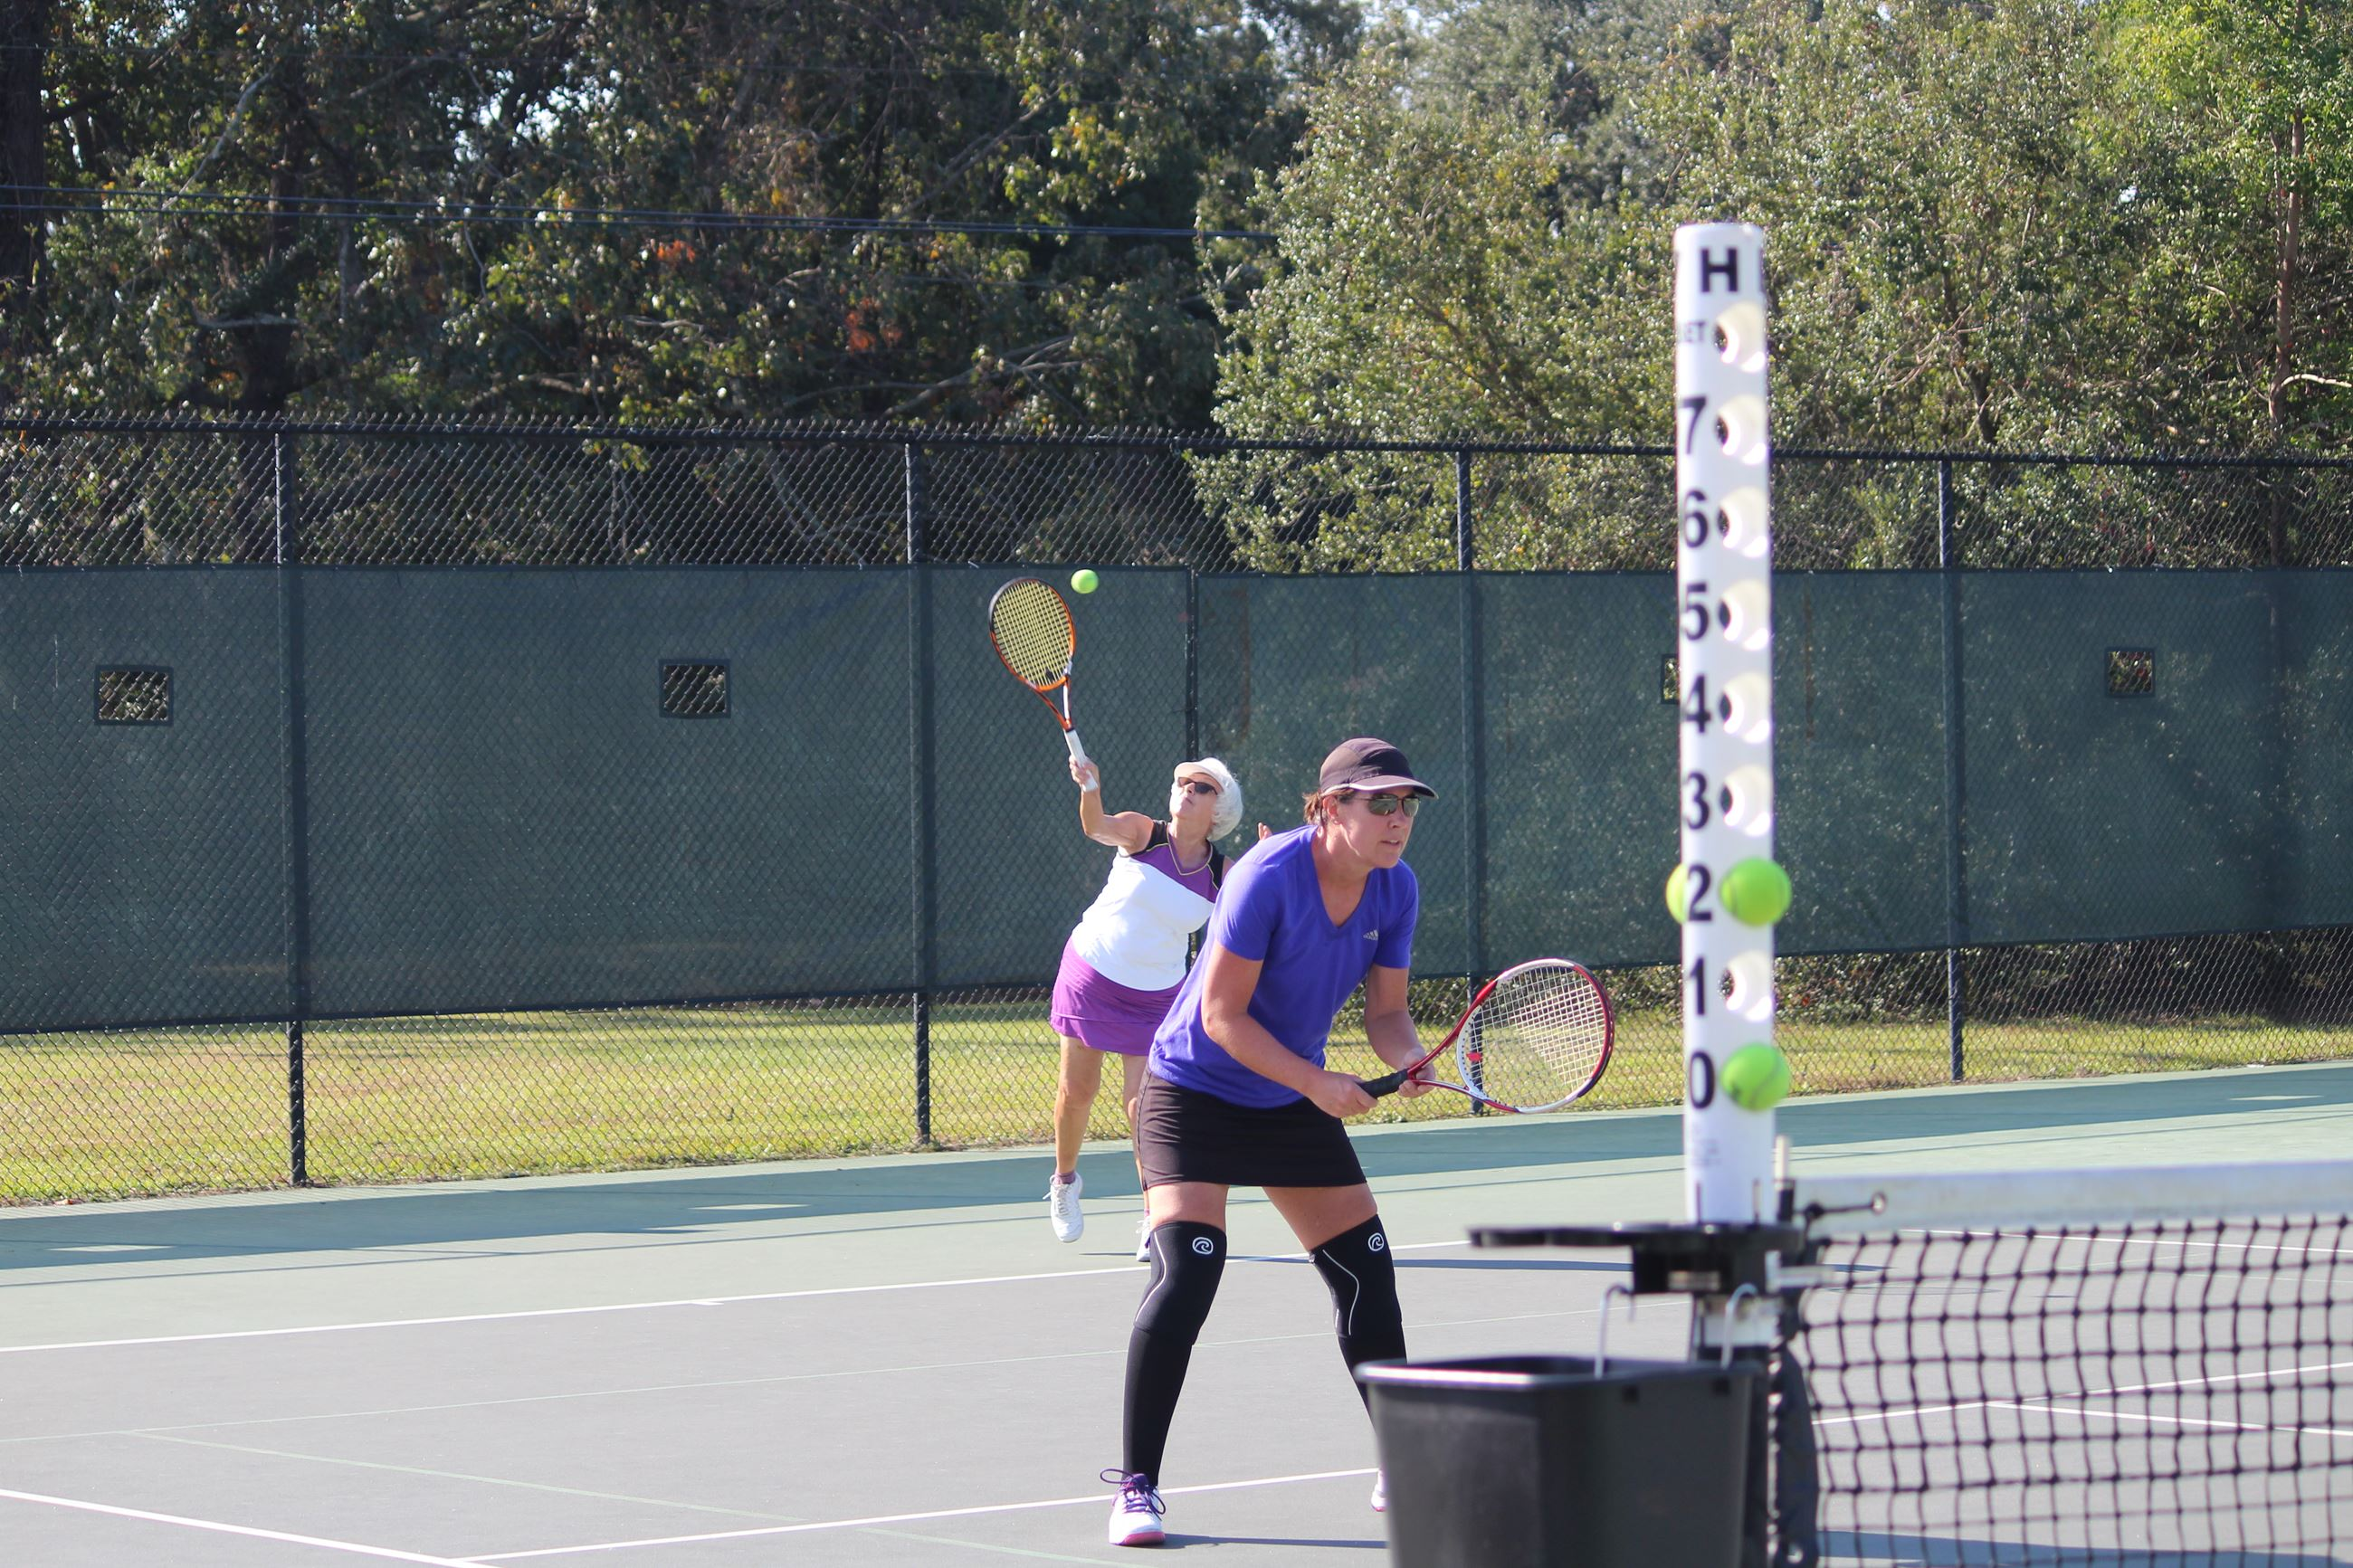 Women's Tennis League